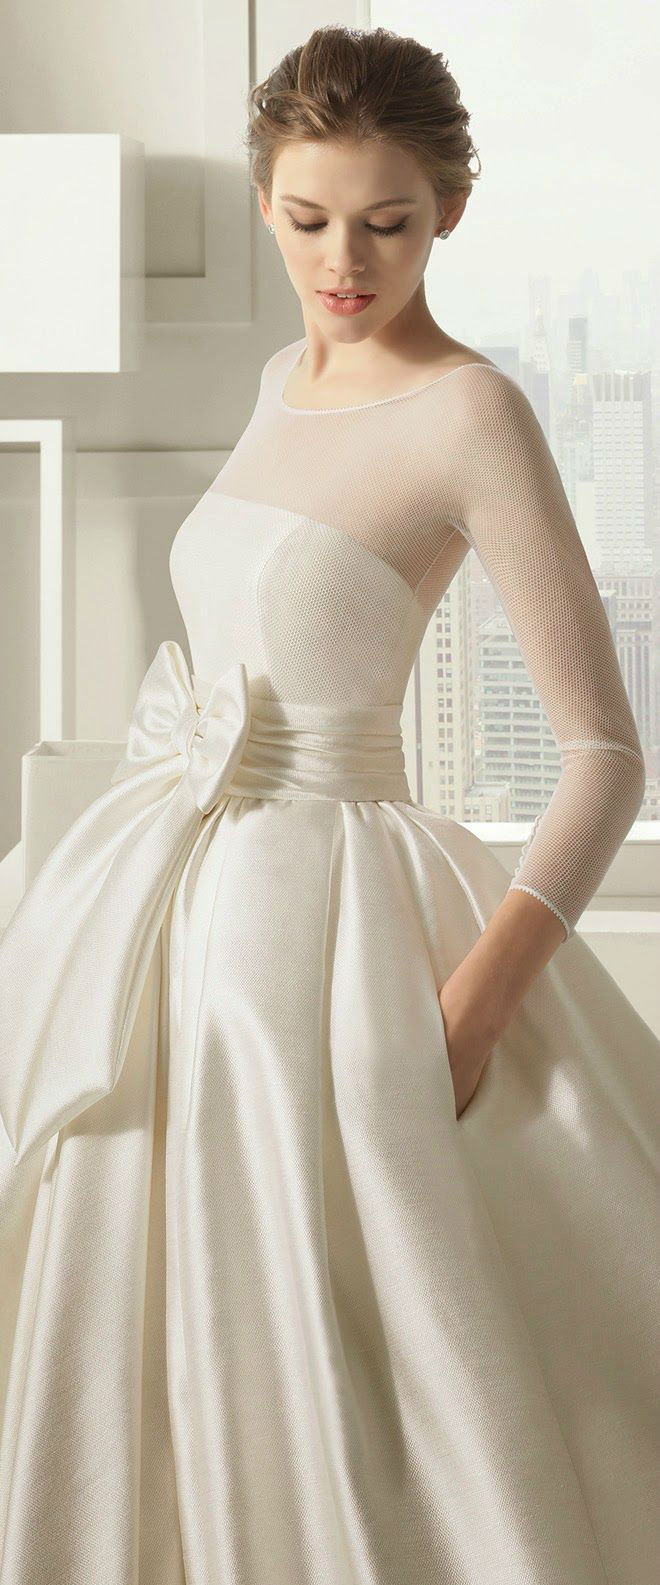 long-sleeve-wedding-dress08